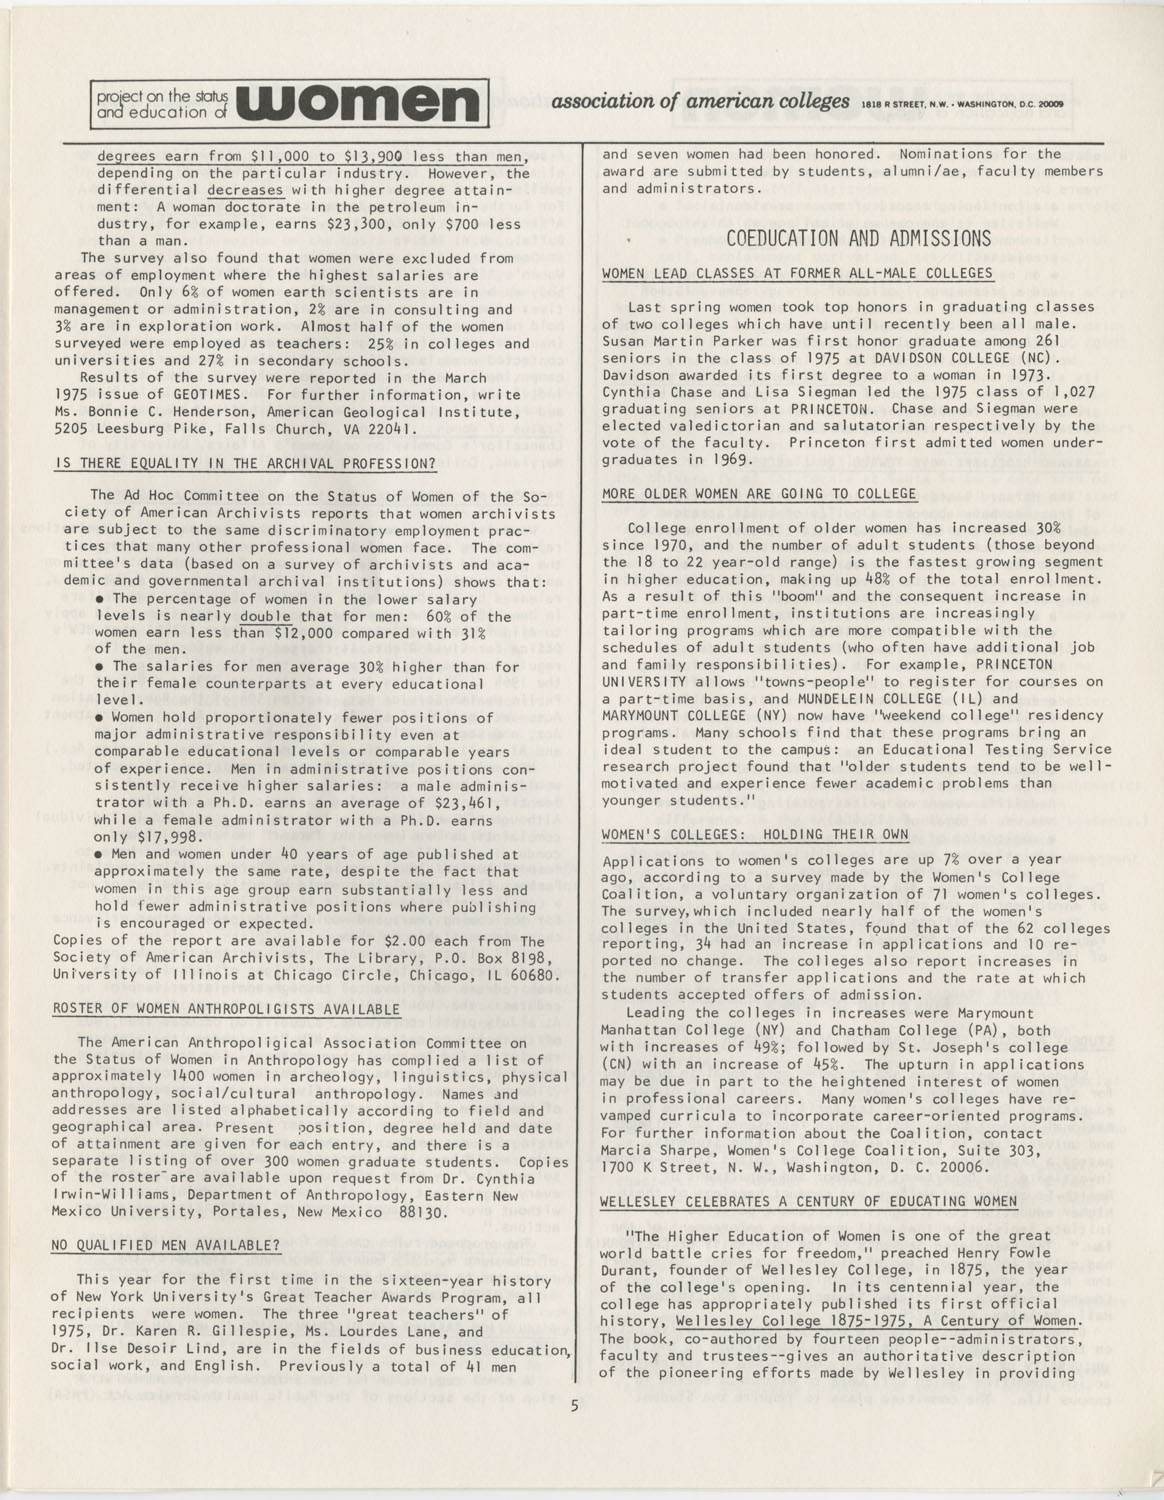 On Campus With Women, Association of American Colleges, November 1975, Page 5